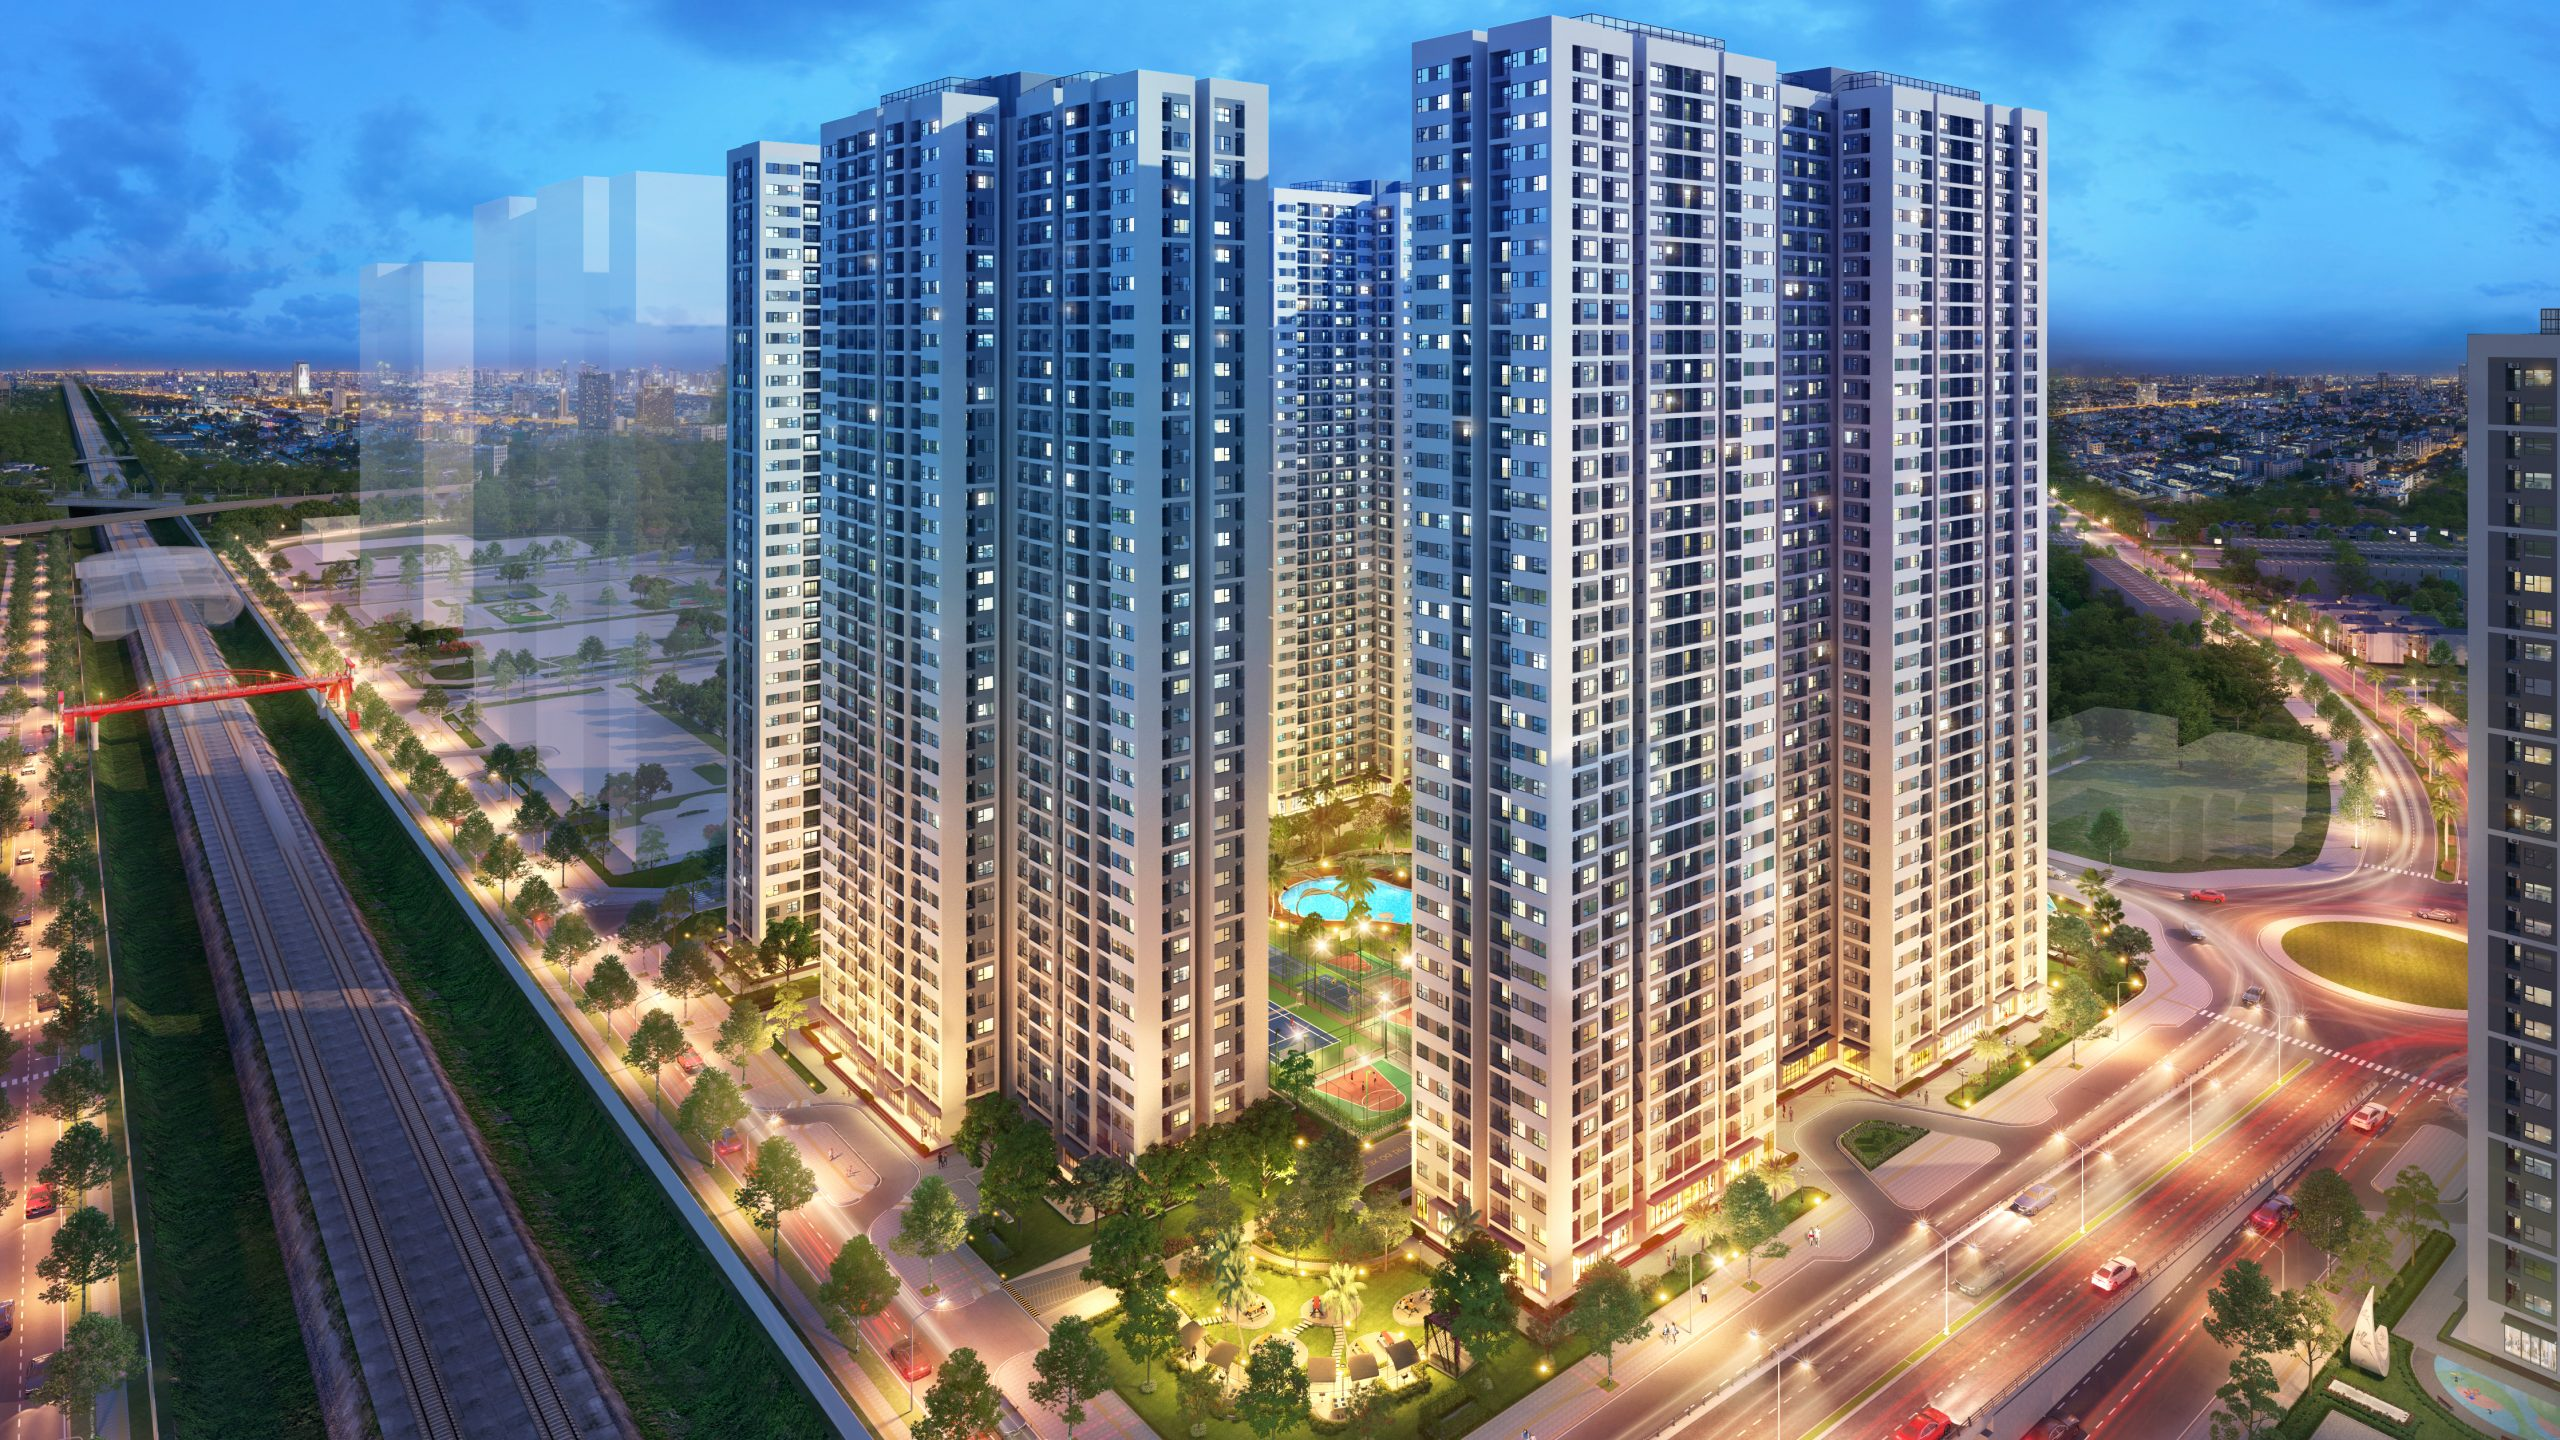 hinh anh nang tam cuoc song voi he sinh thai tien ich vinhomes smart city so 14